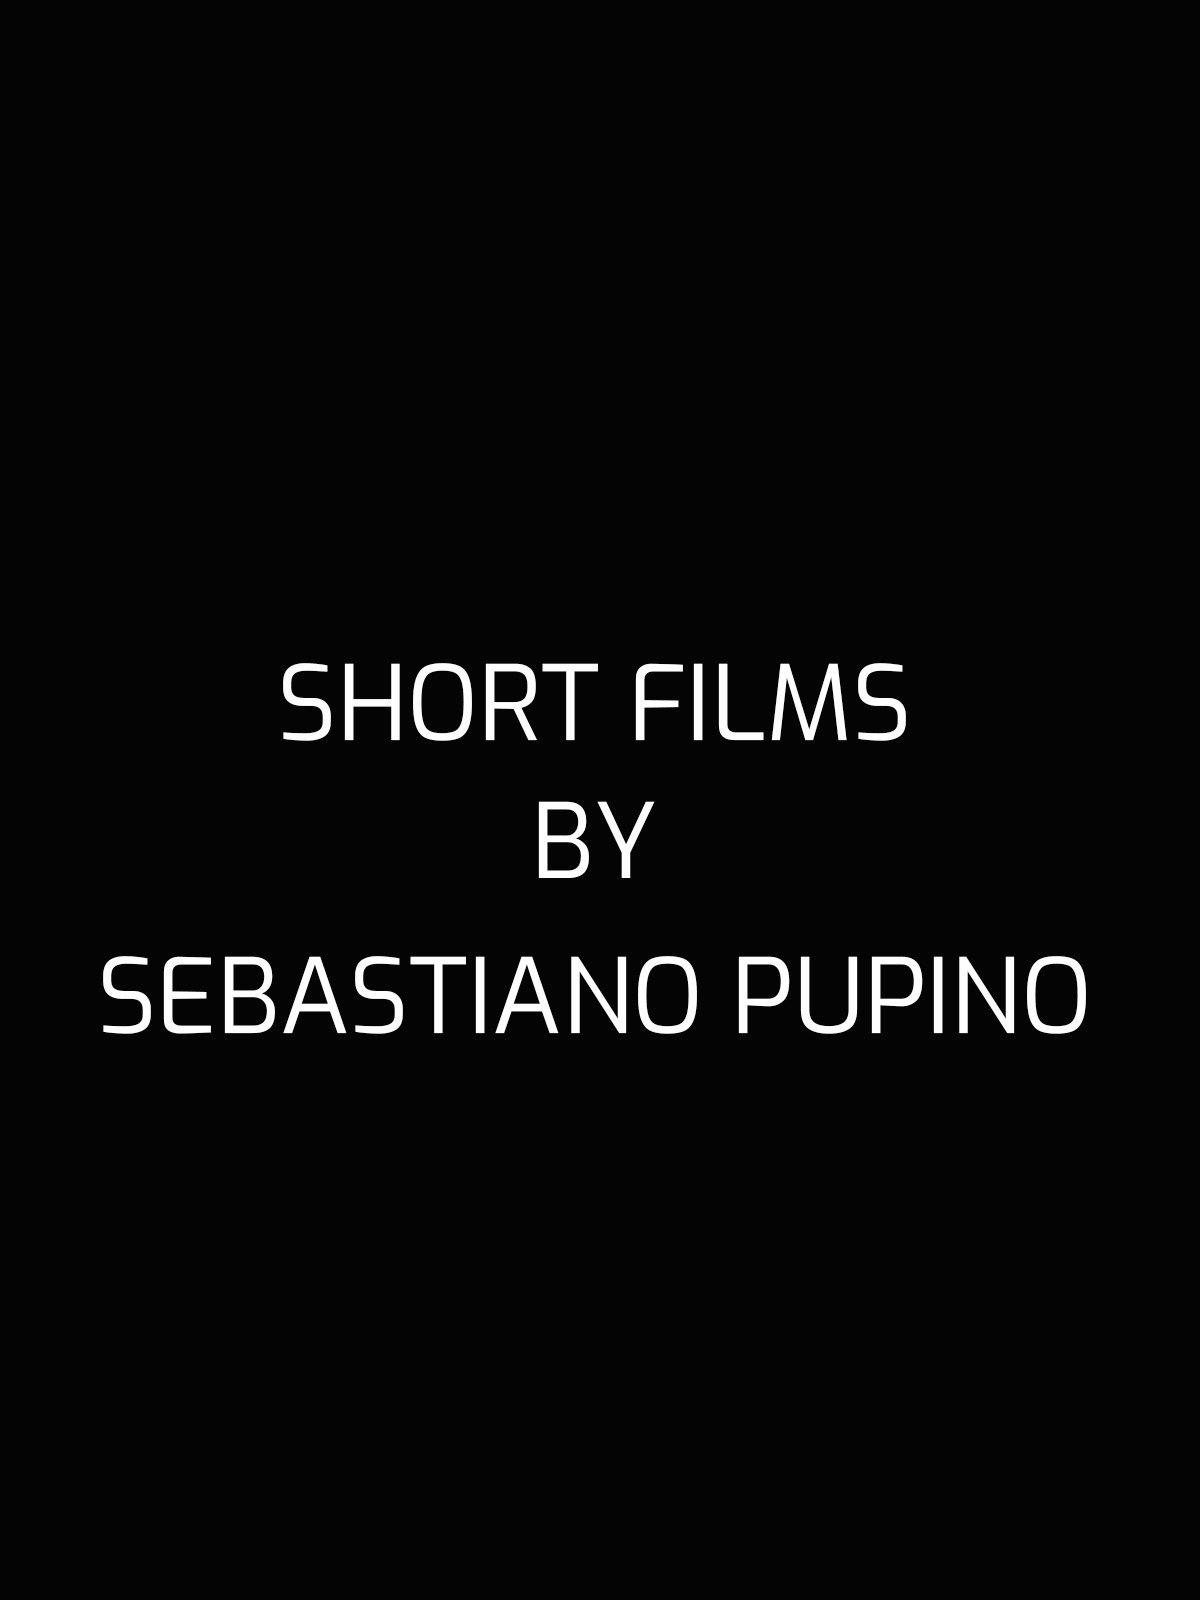 4 Short Films by Sebastiano Pupino